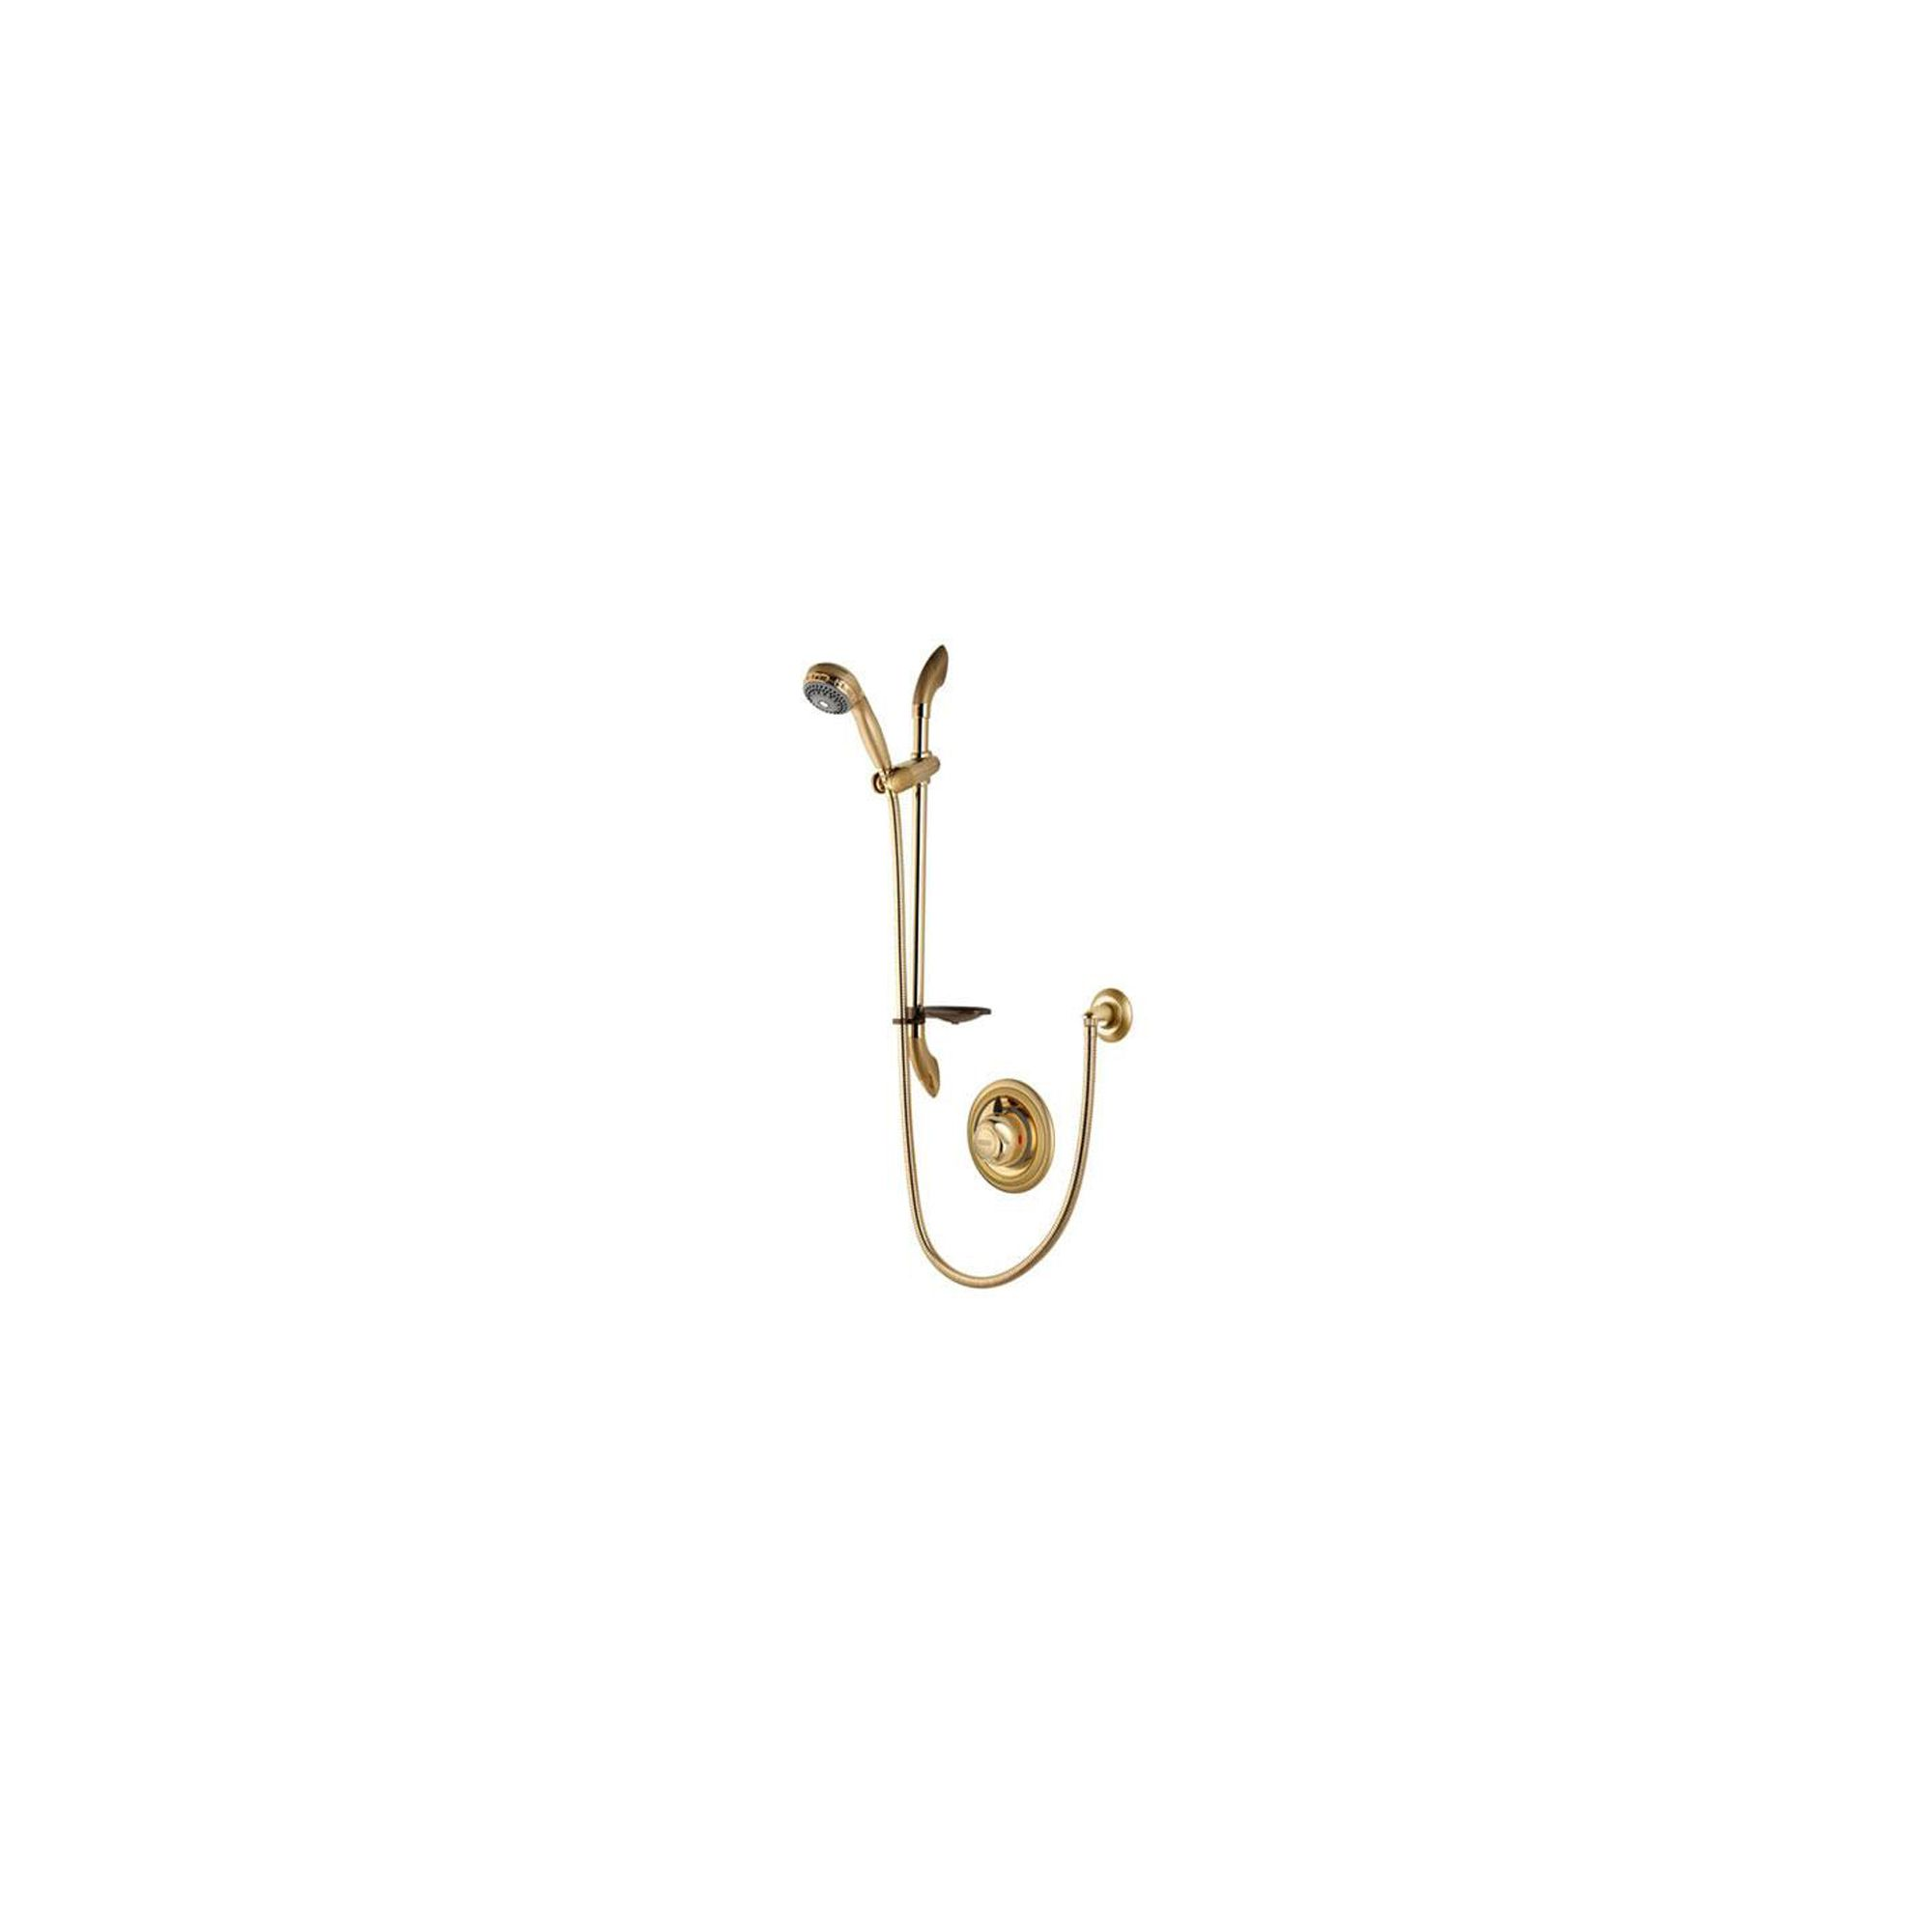 Aqualisa Aquavalve 609 Concealed Shower Valve with Adjustable Shower Head Gold at Tesco Direct